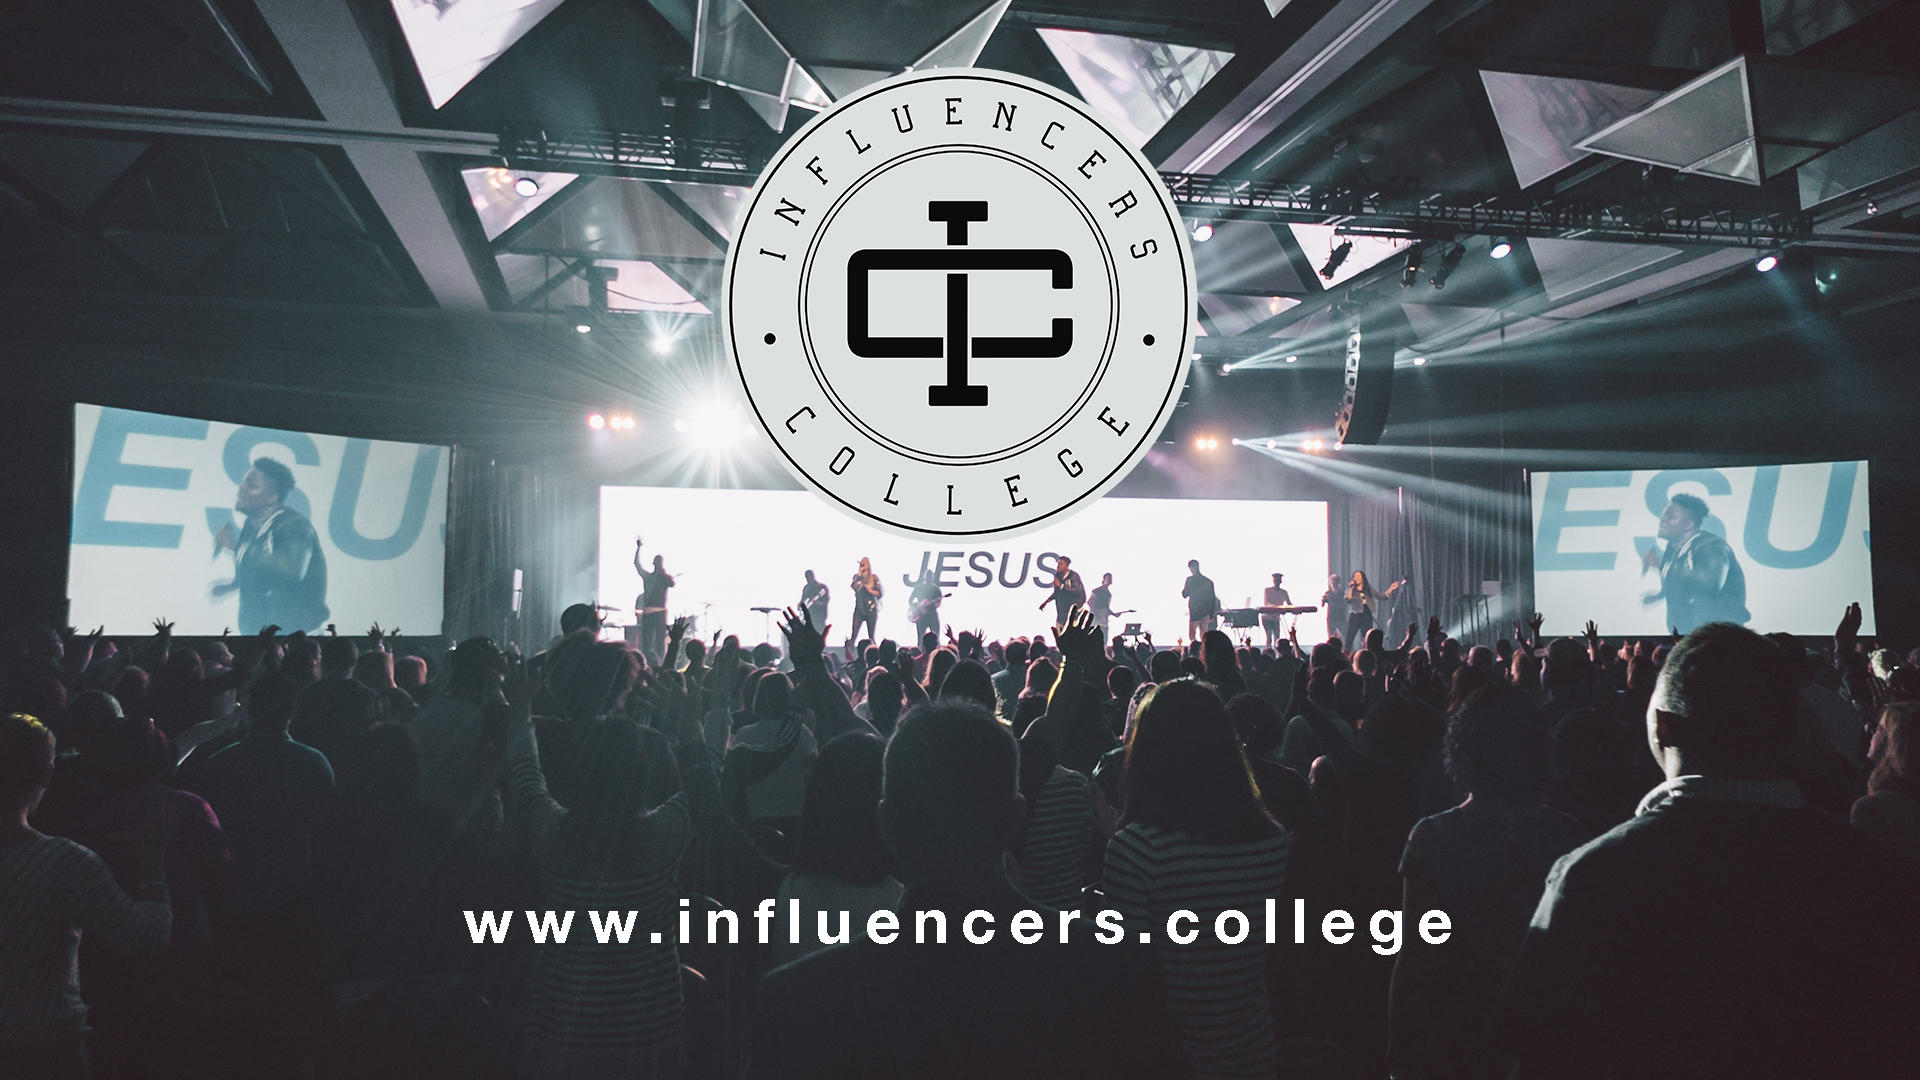 Influencers College Screen.jpg